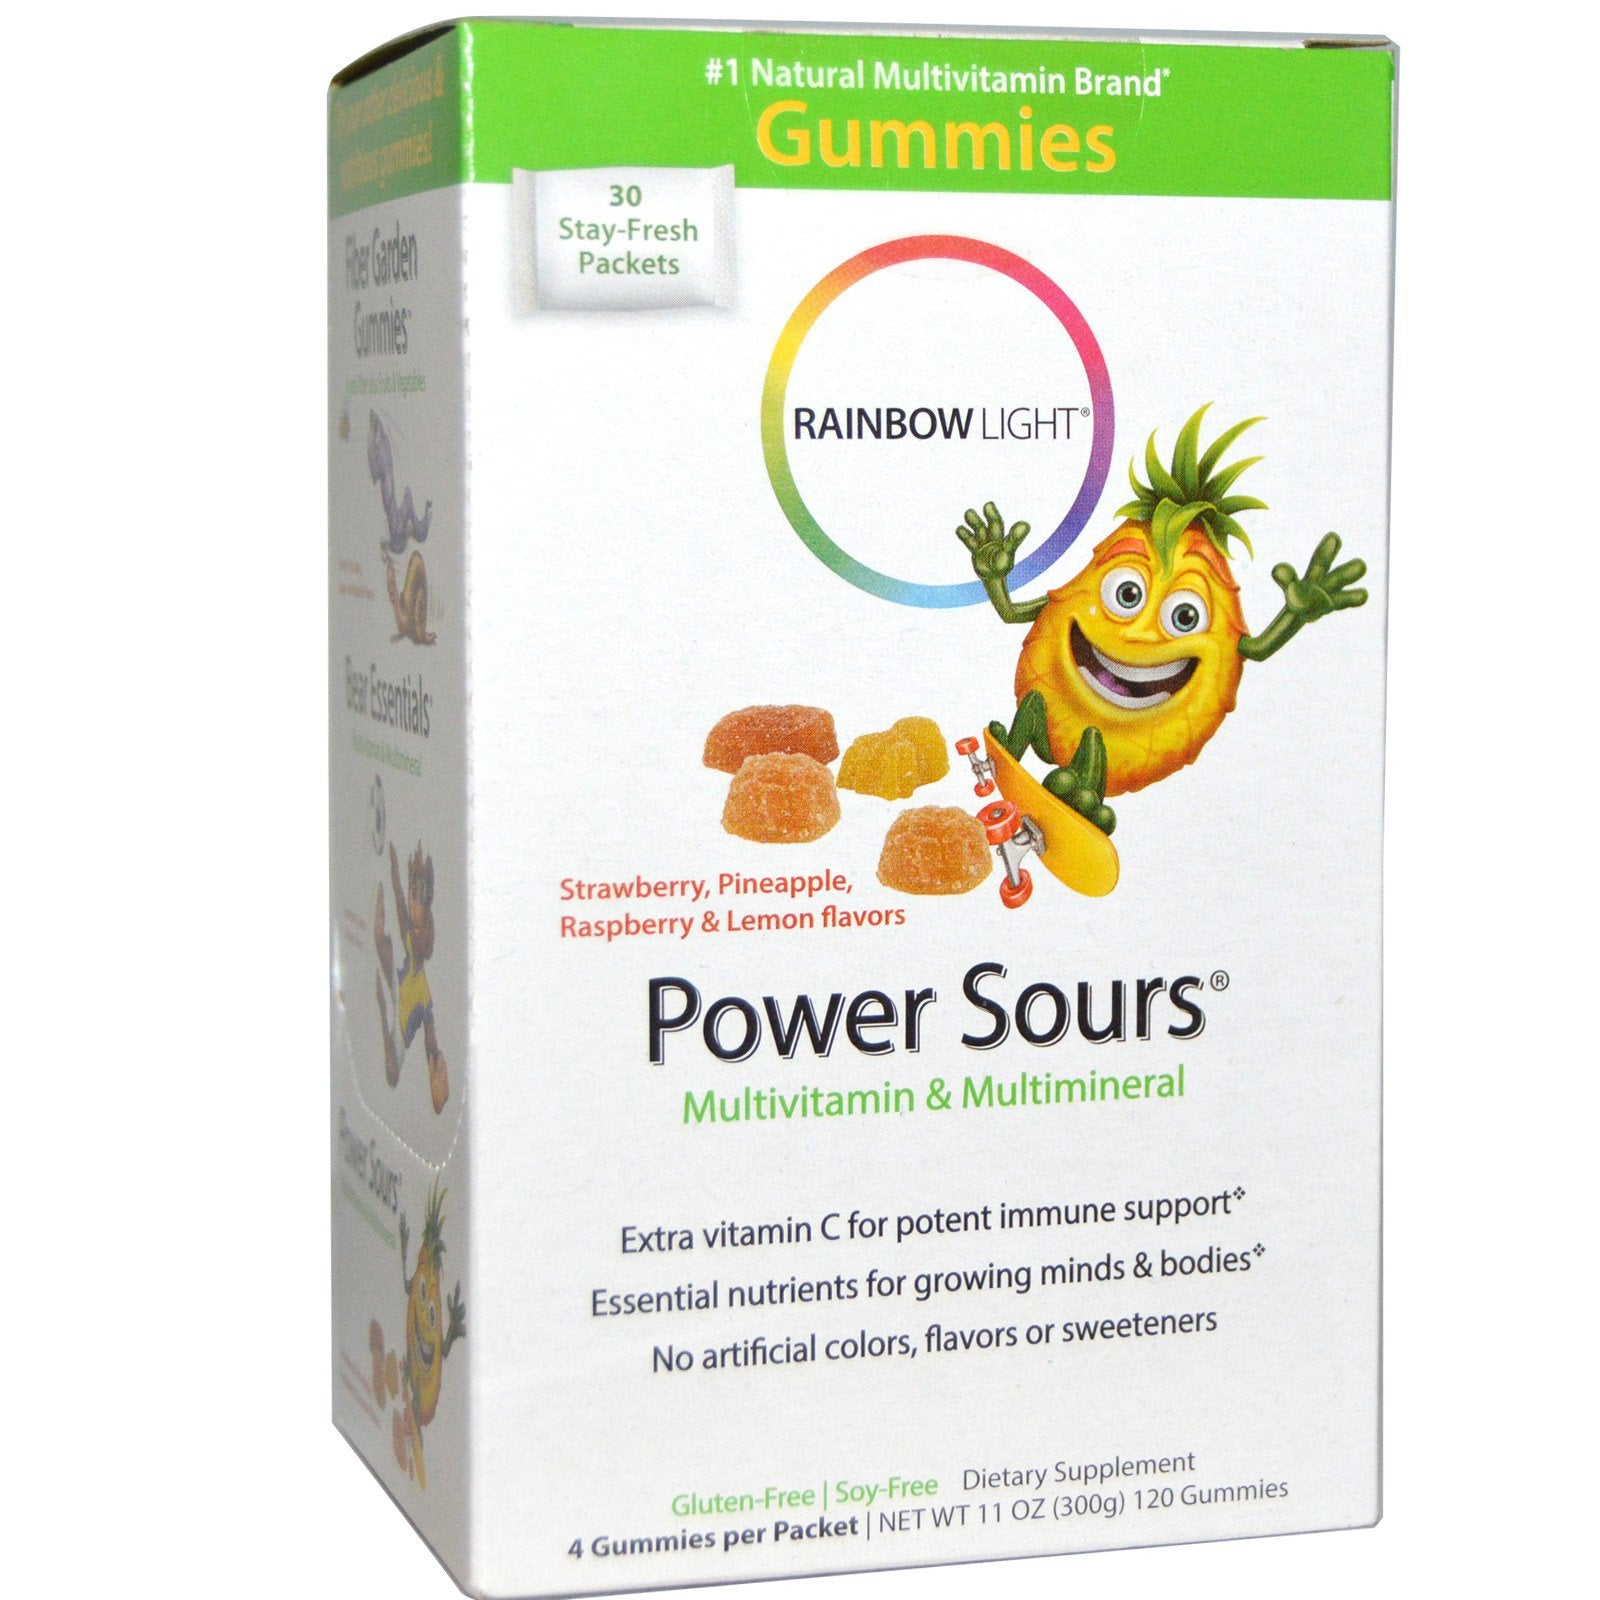 Rainbow Light Gummy Power Sour Multivitamin & Mineral, 30 pkts.-NaturesWisdom